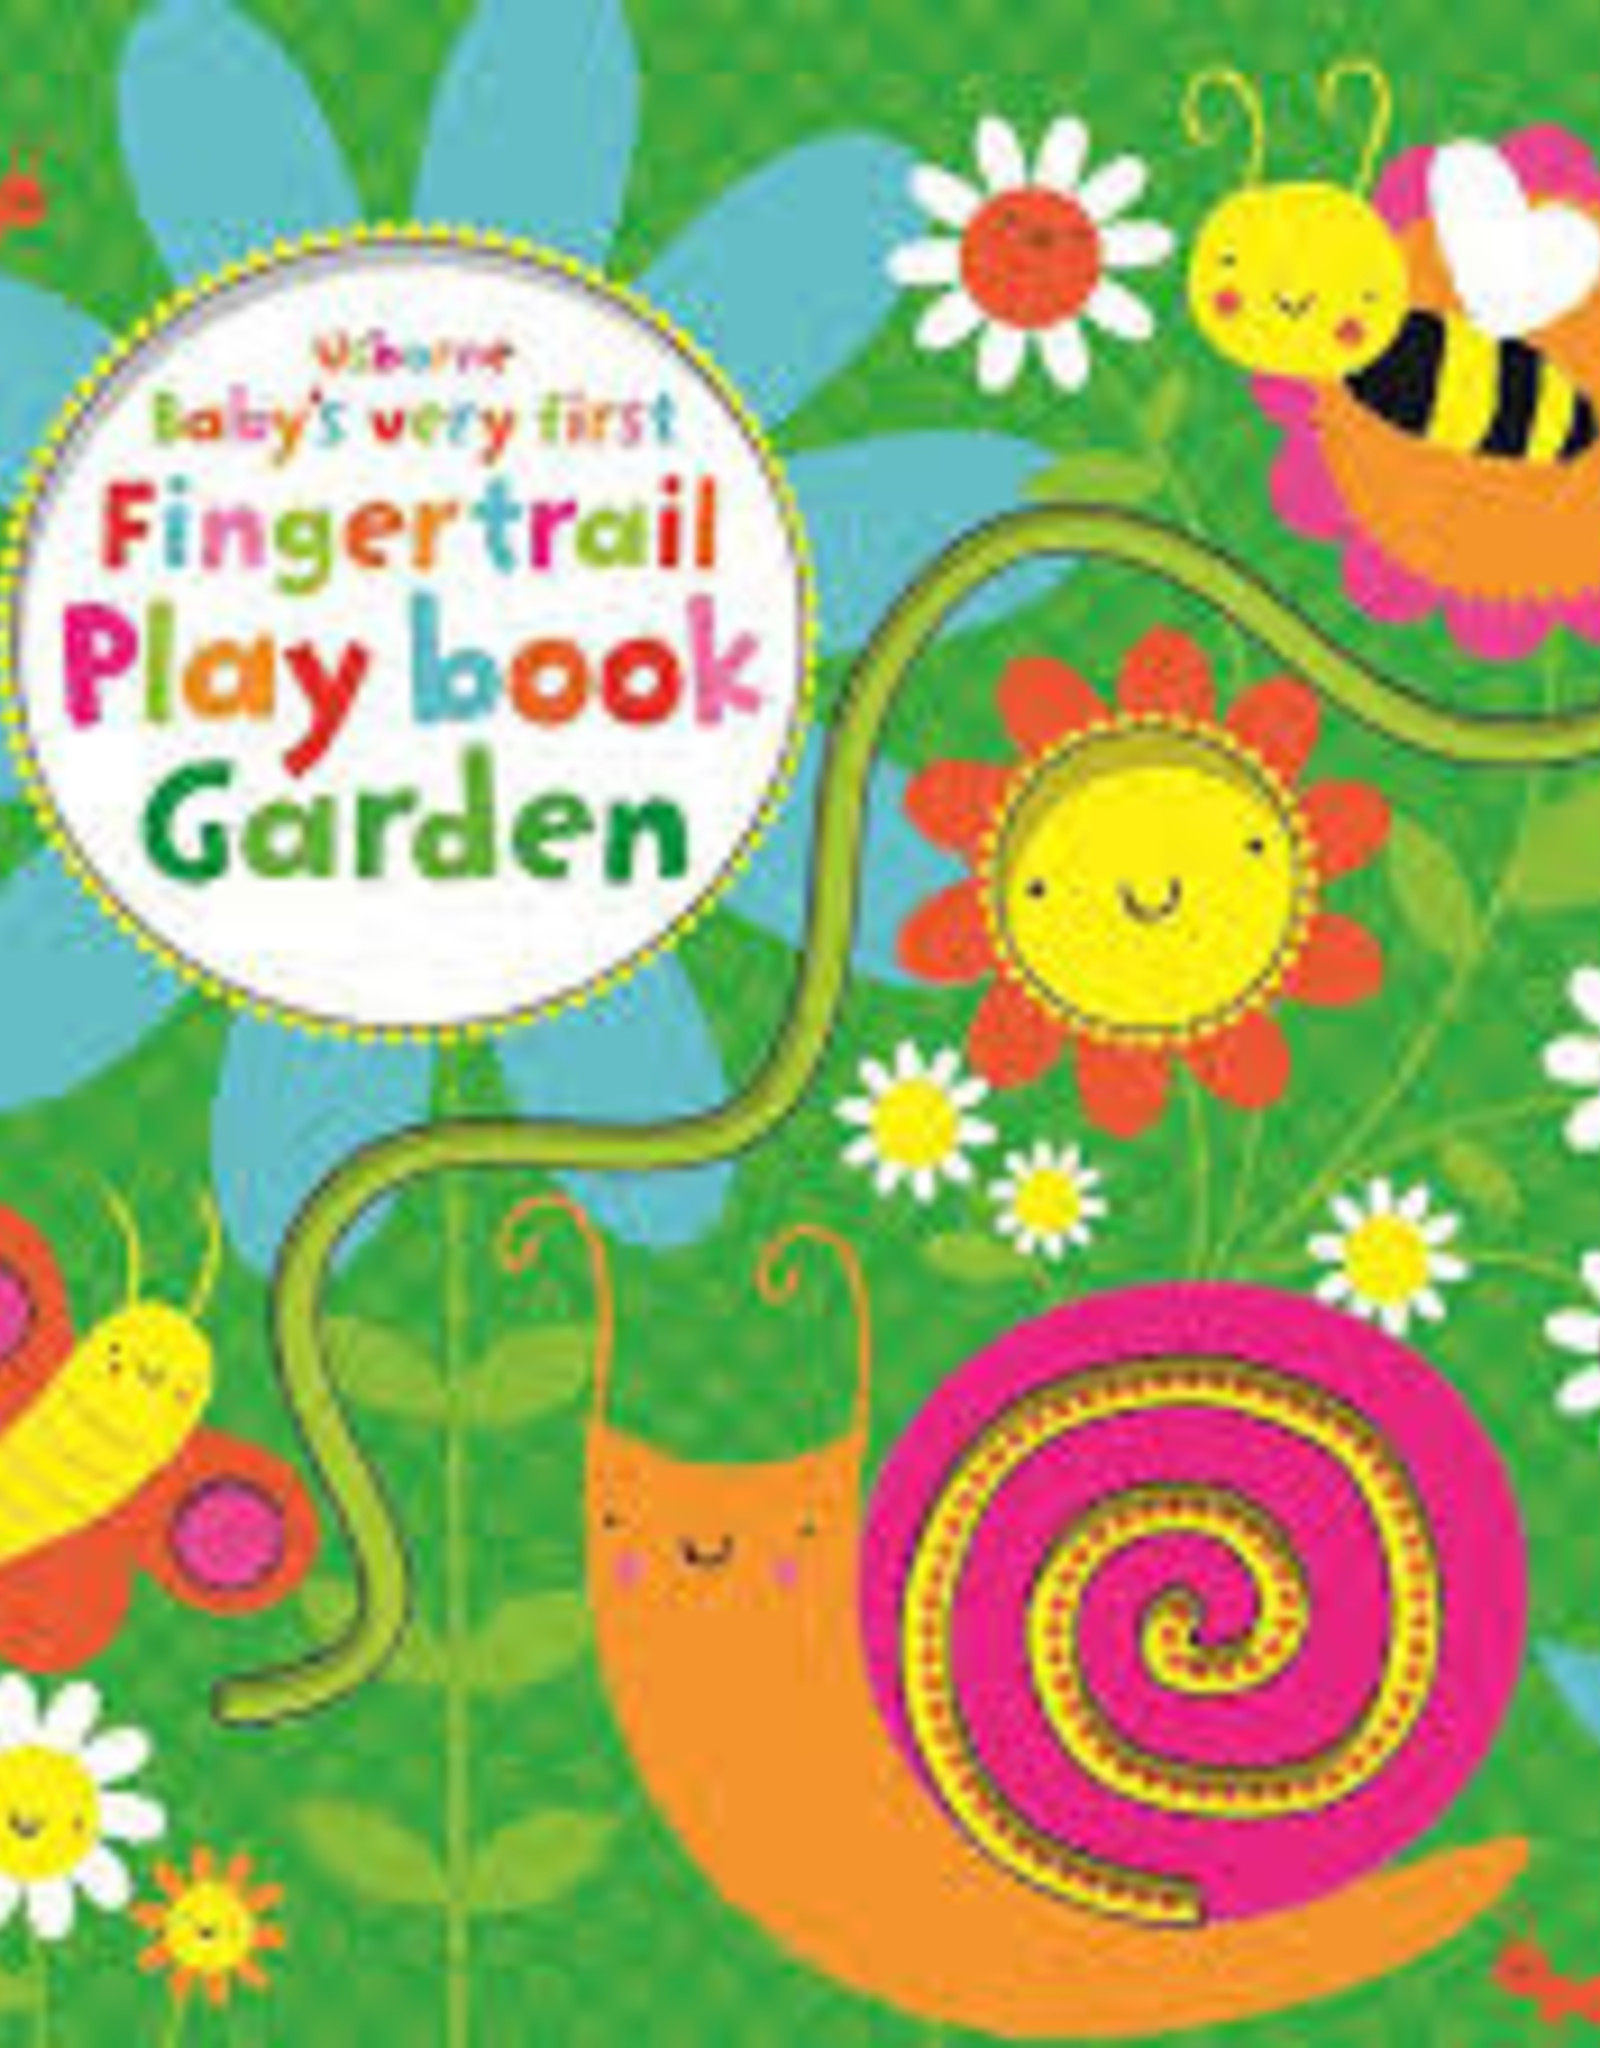 Usborne Usborne Baby's Very First Fingertail Play book Garden